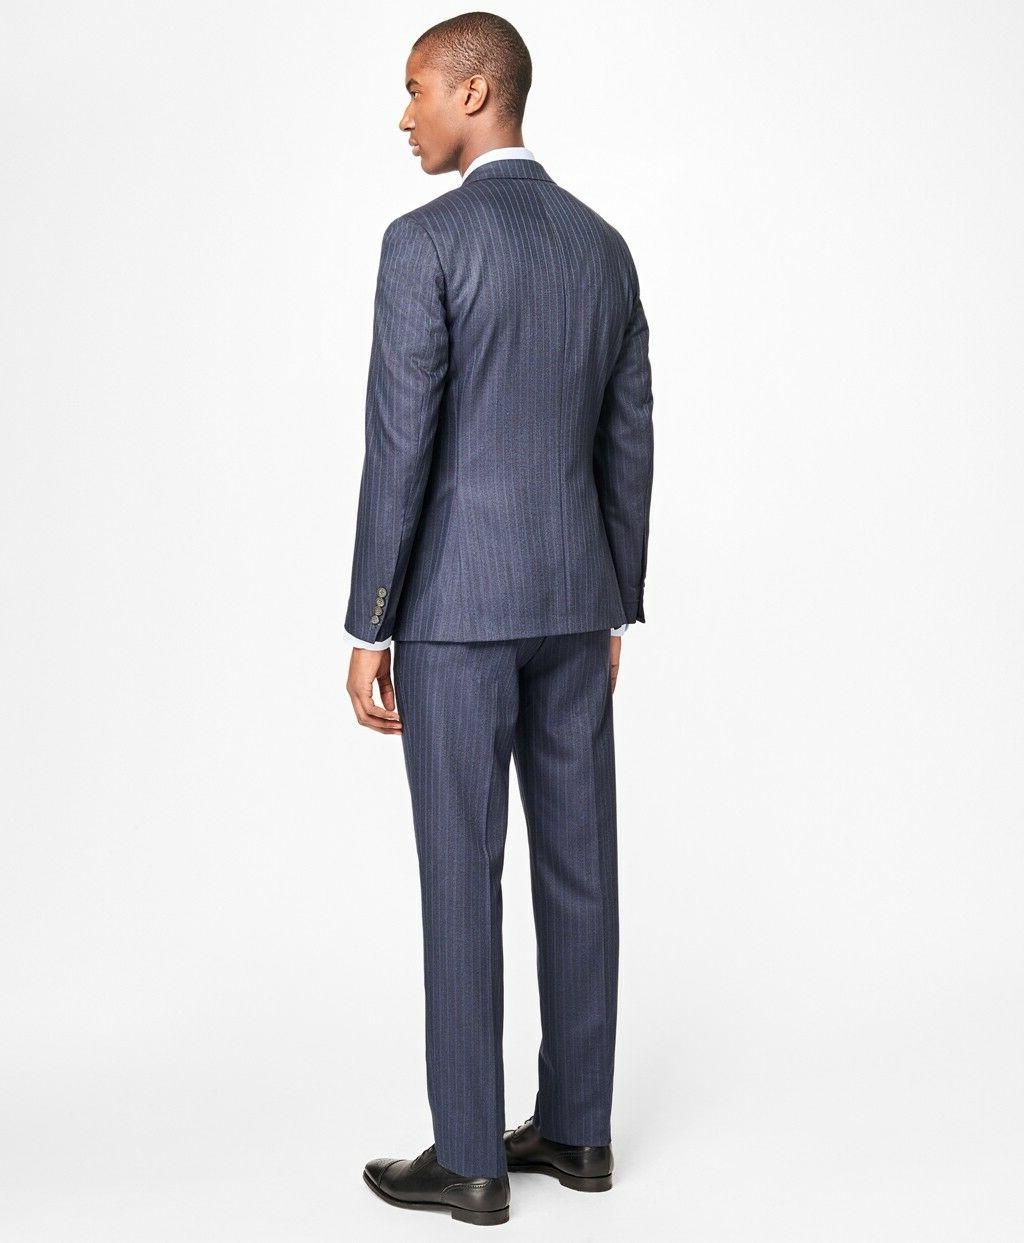 NWT Brothers Milano Fit Textured $1198